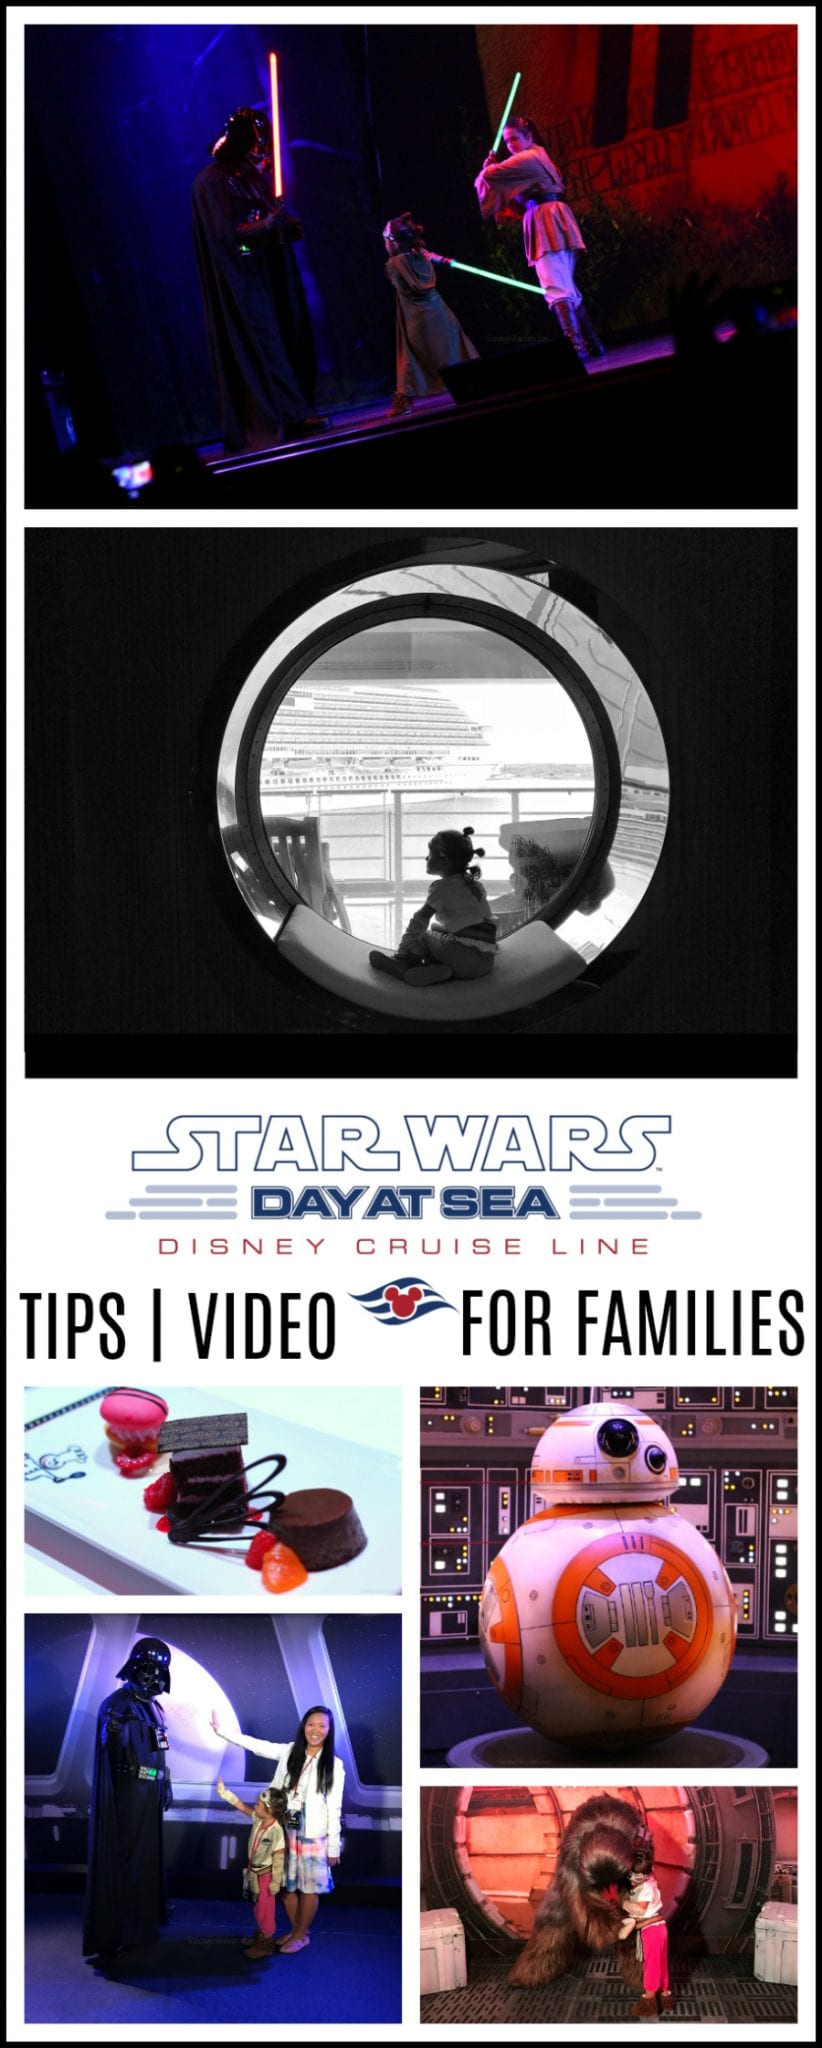 Star wars day at sea tips